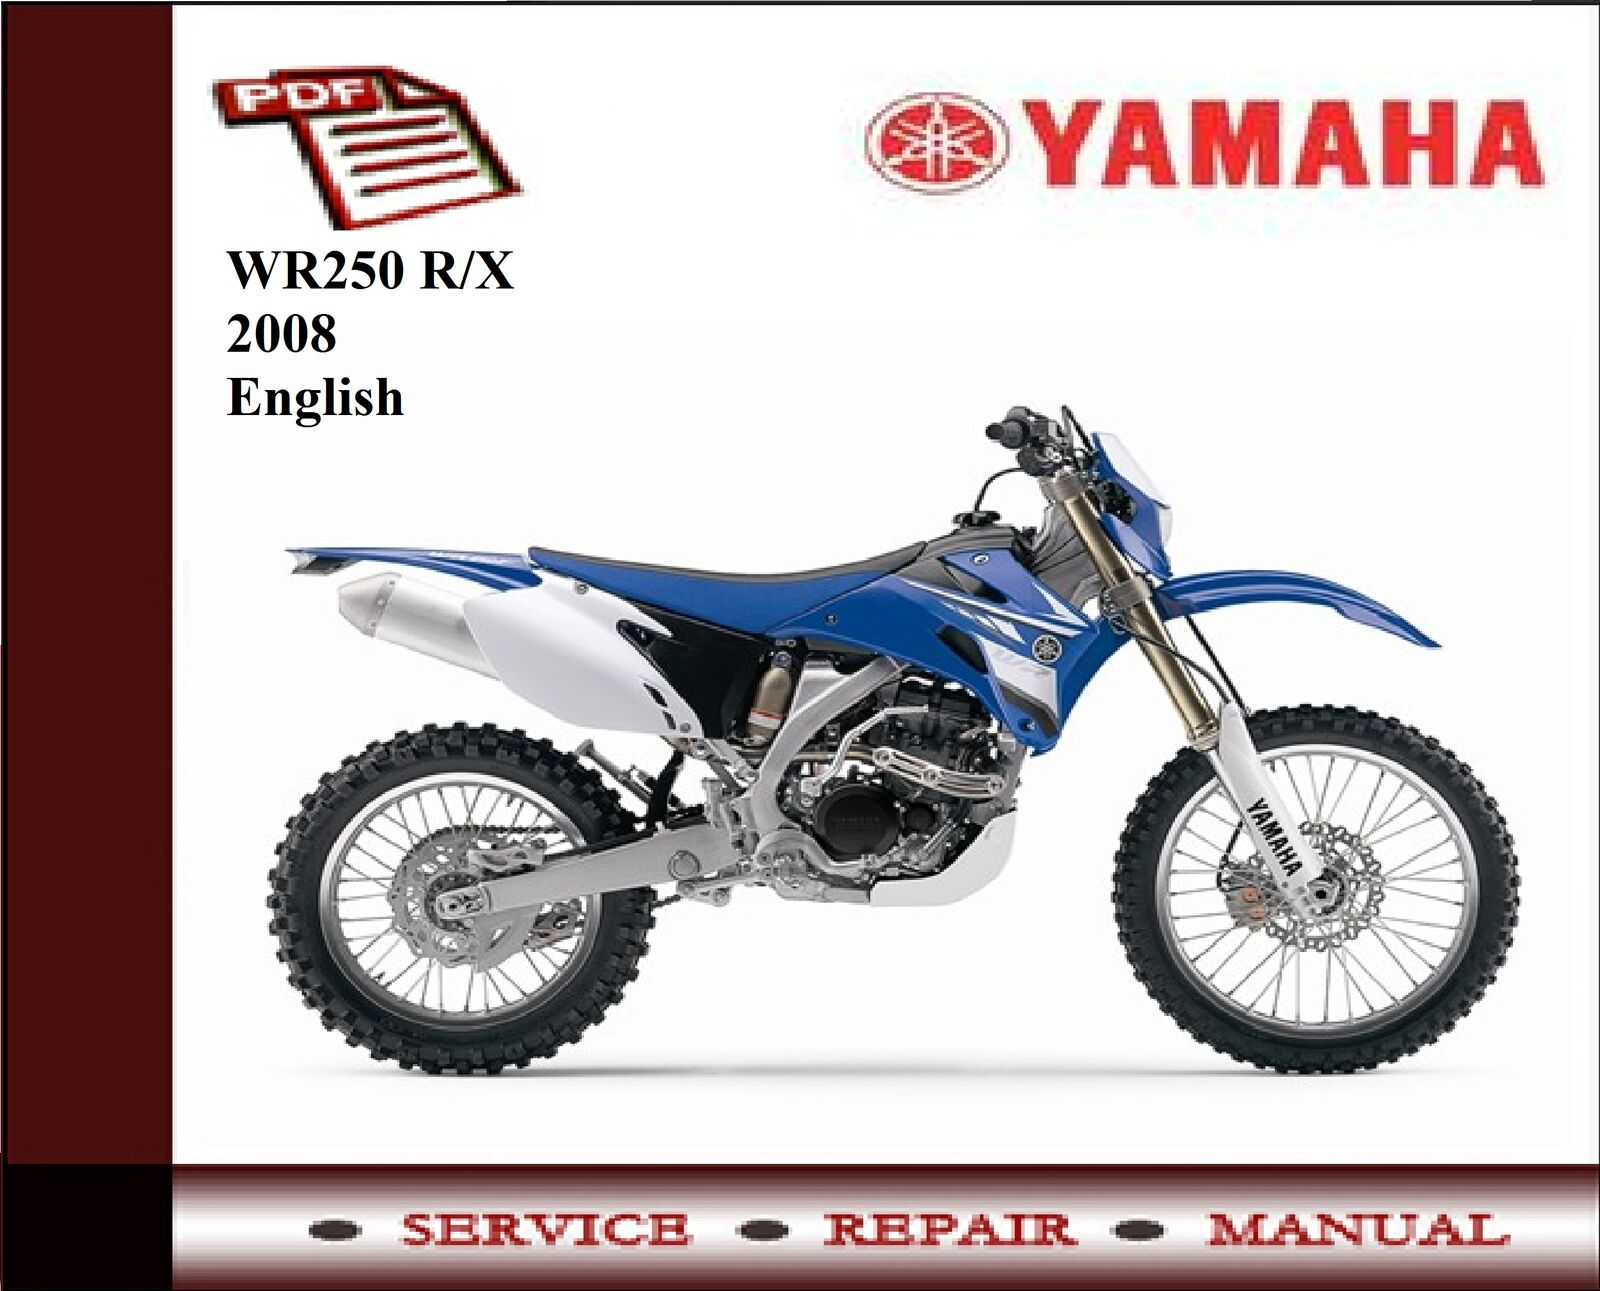 Yamaha Wr250 Wr 250 R X 2008 Workshop Service Repair Manual Wiring Wr250r Diagram 1 Of 1free Shipping See More